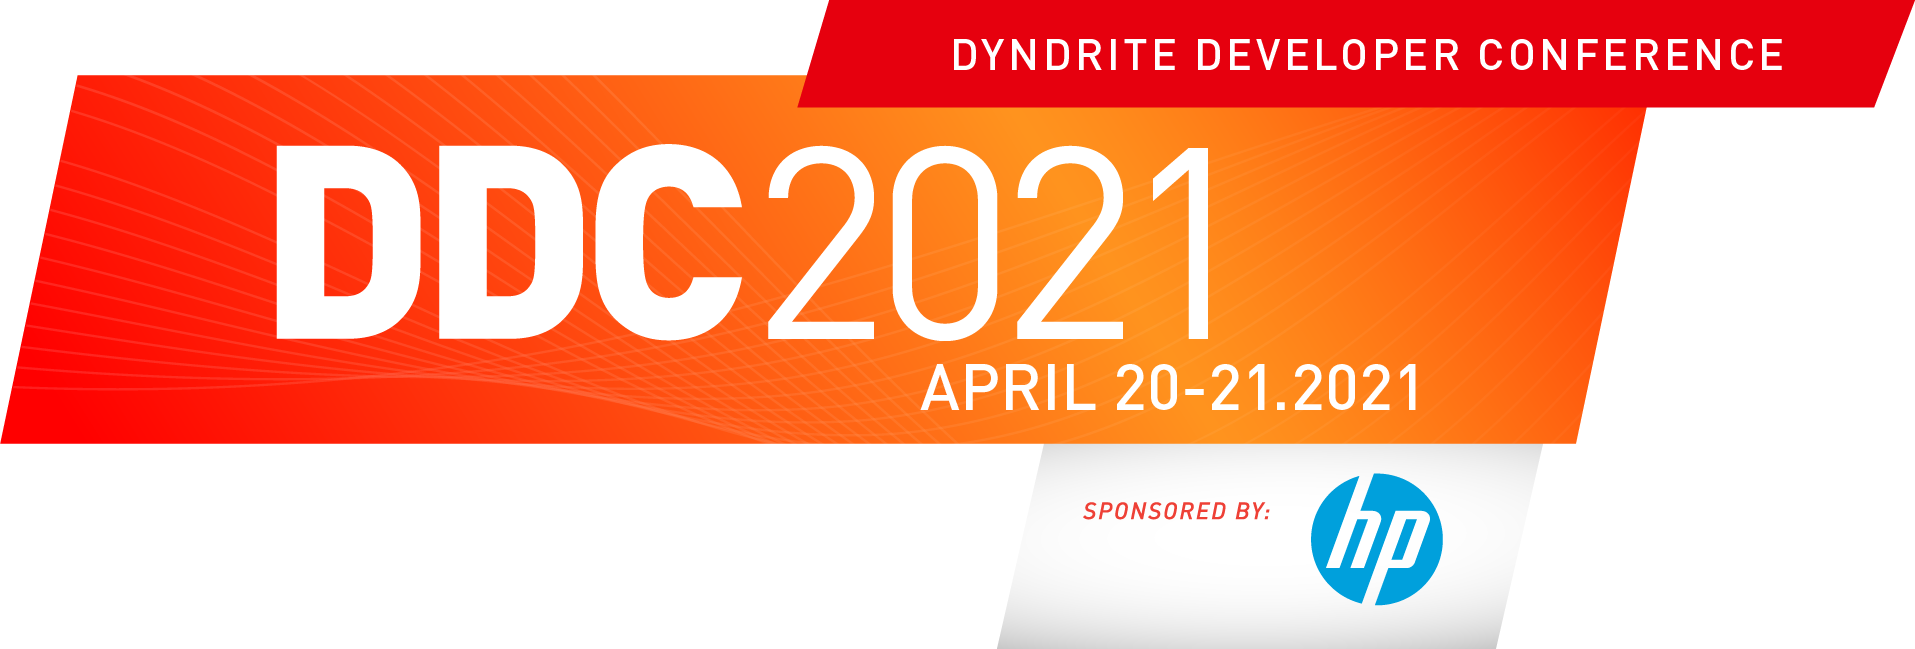 Dyndrite Developer Conference April 20-21, 2021